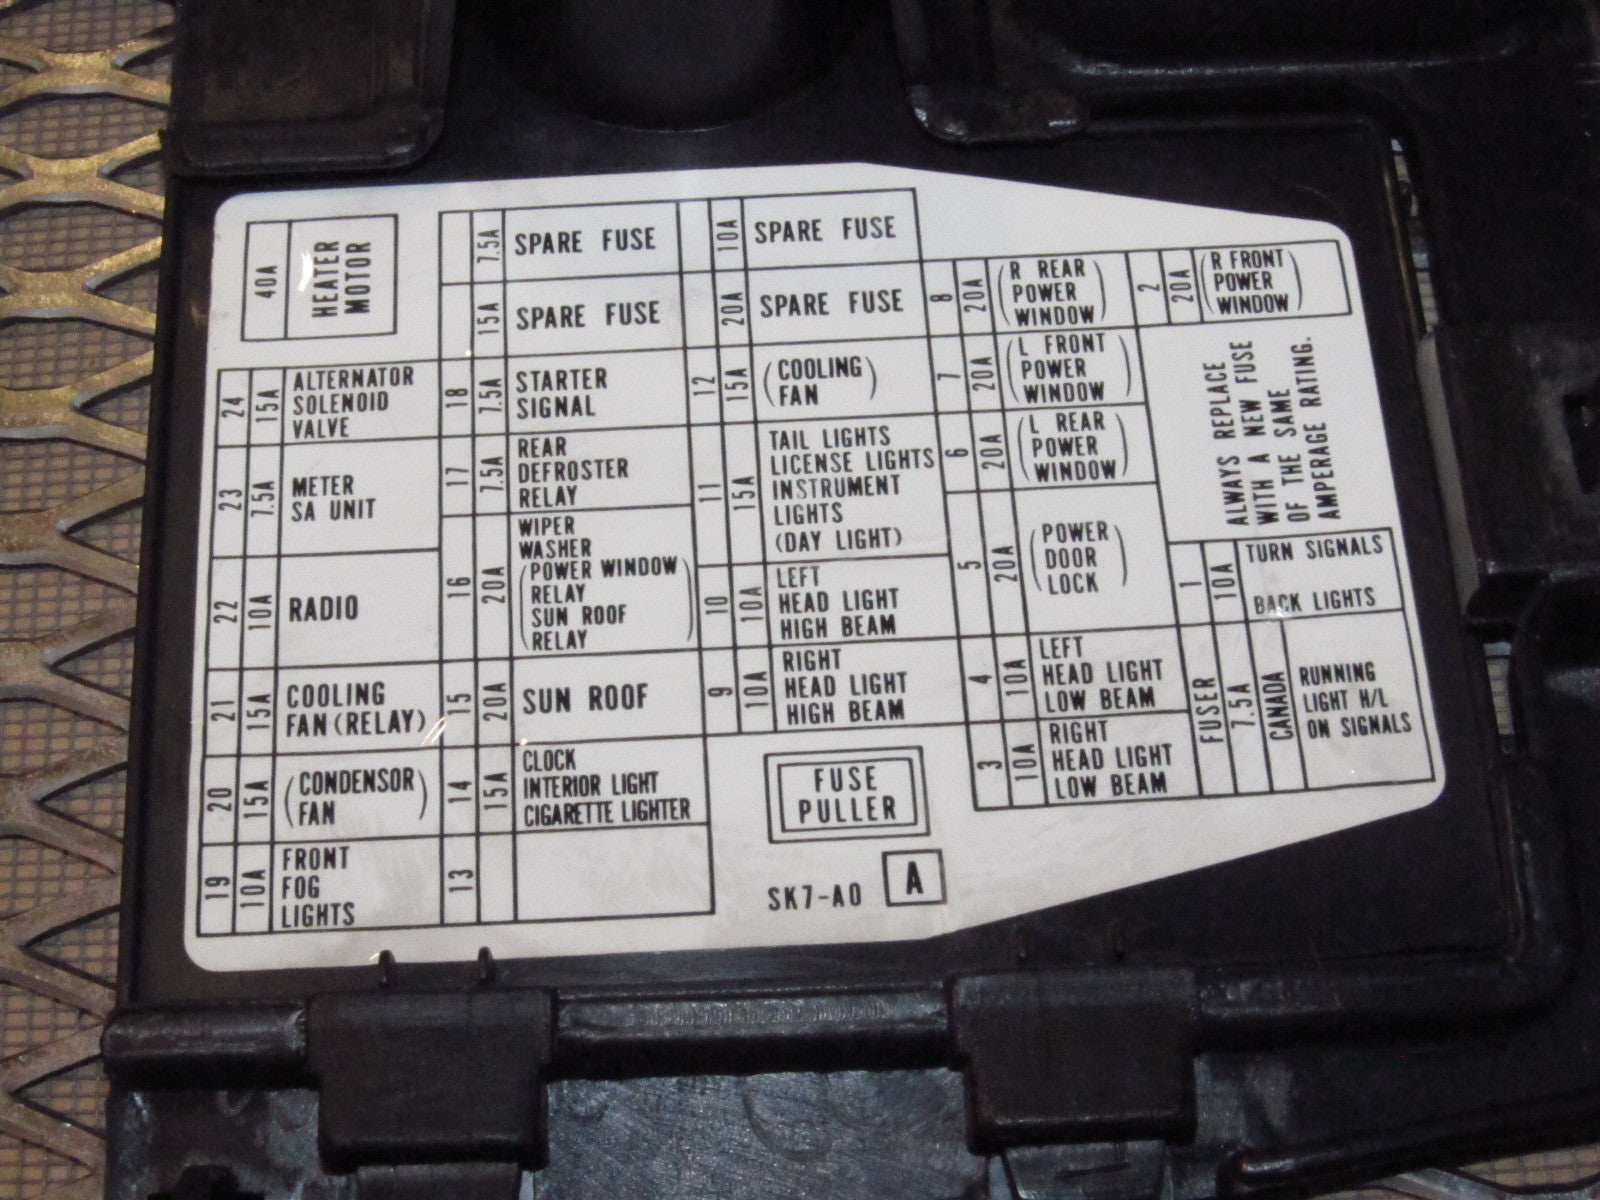 92 Integra Fuse Box Wiring Diagram Todays Rsx Trusted 06 Acura 90 93